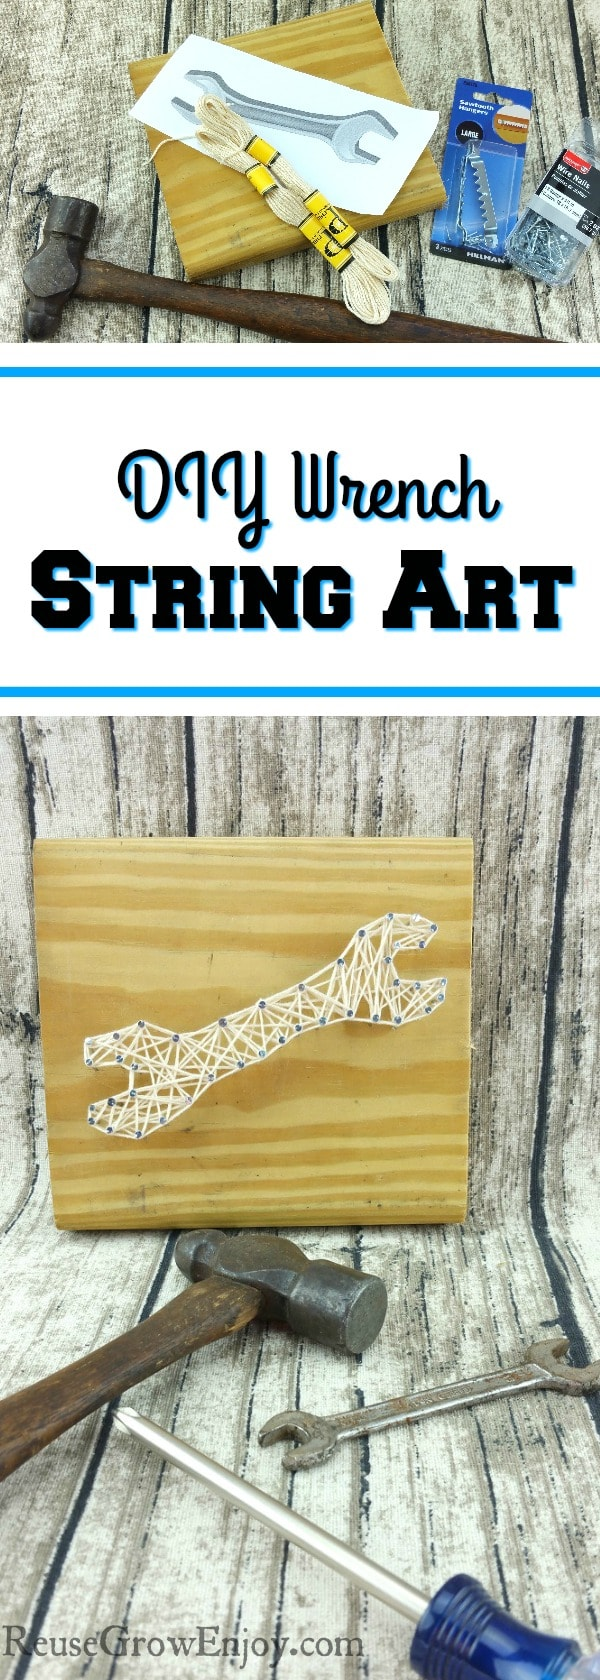 Looking for a craft project that could also be for men? Check out this DIY wrench string art!